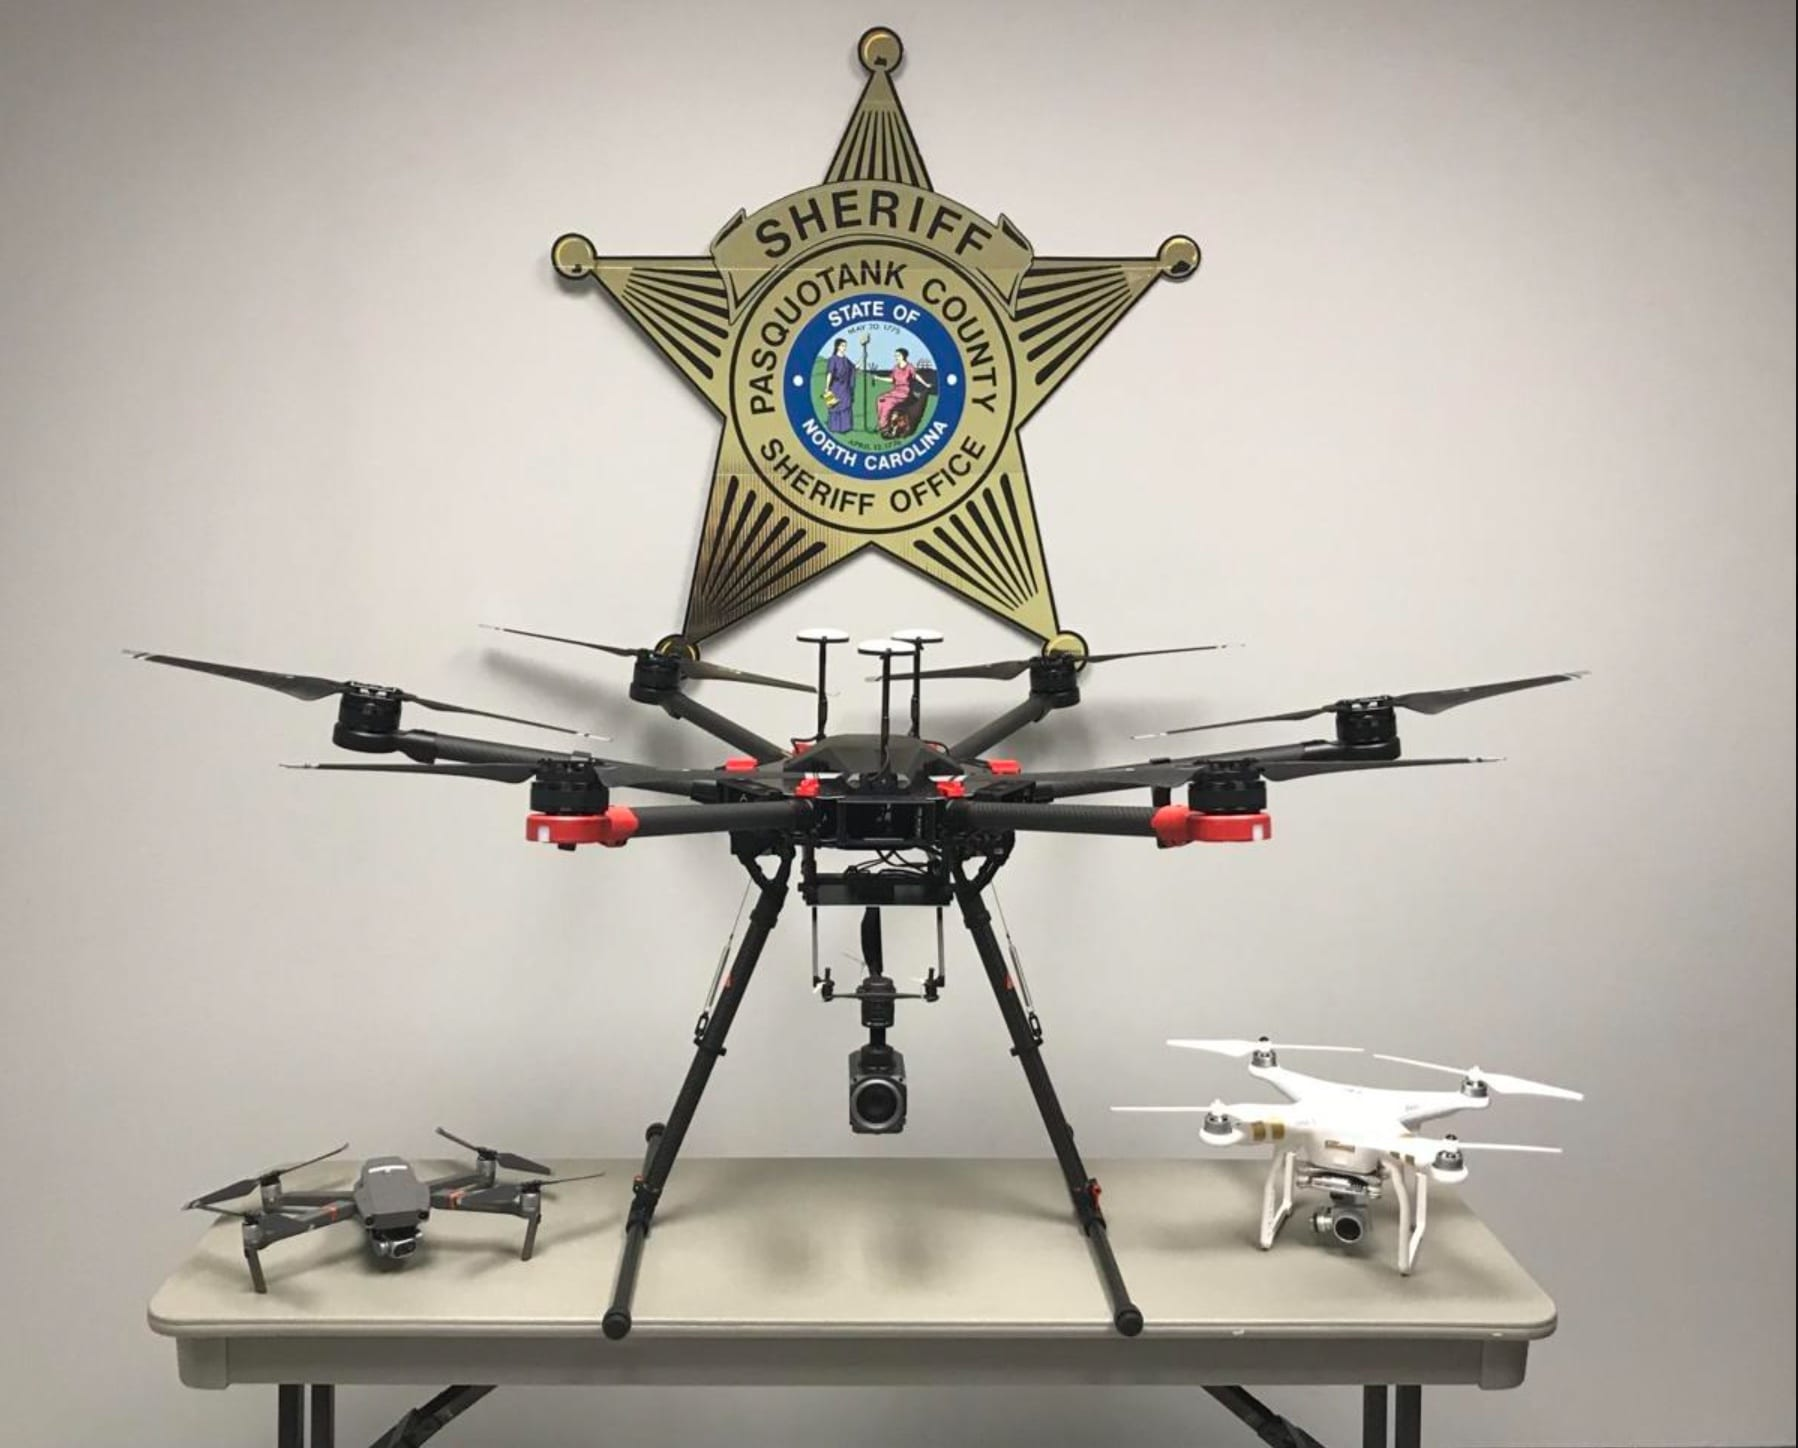 NC Sheriff's Department uses federal grant to buy two DJI drones